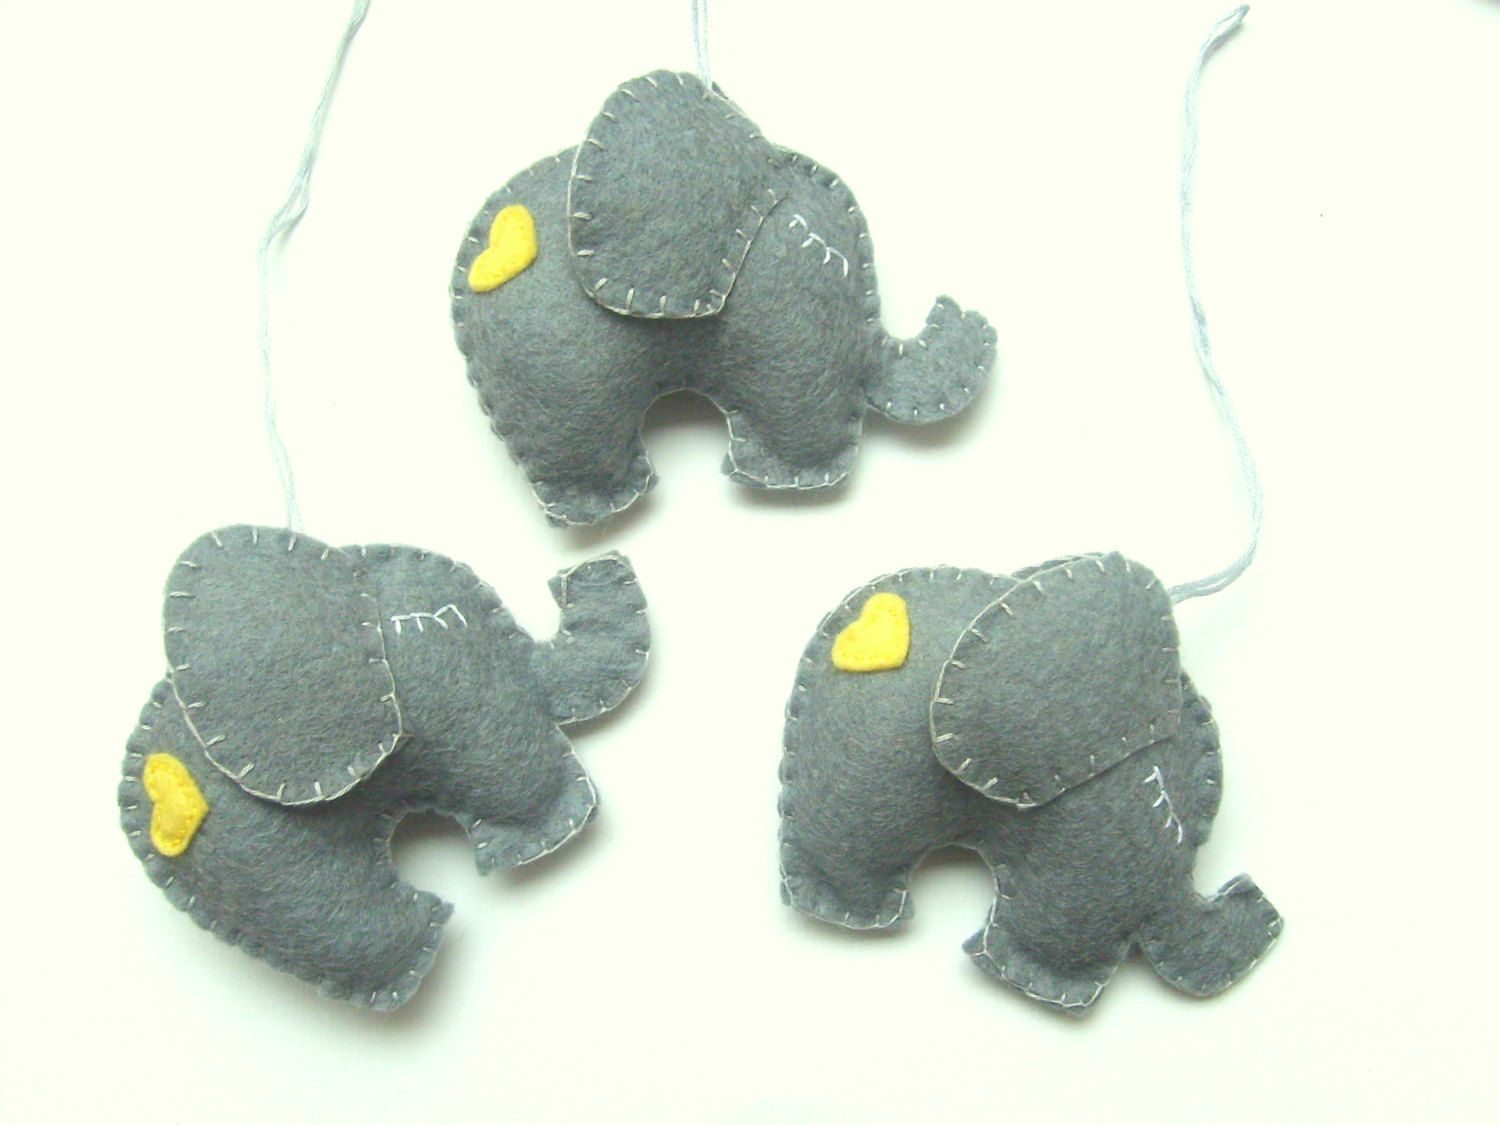 Lovely Elephant ornament - felt ornaments - Christmas/Housewarming home decor - Baby shower ornaments - Grey elephant with pink heart - pinned by pin4etsy.com